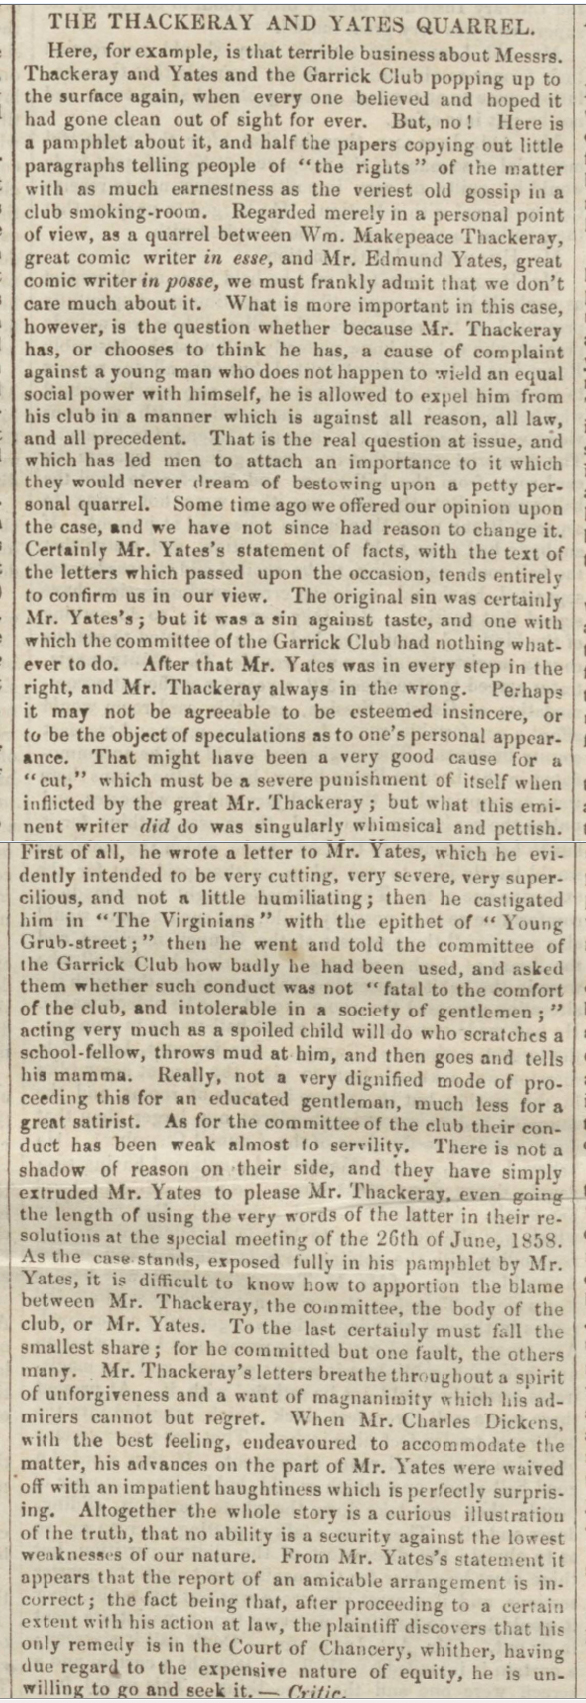 historical newspaper reports about William Makepeace Thackeray